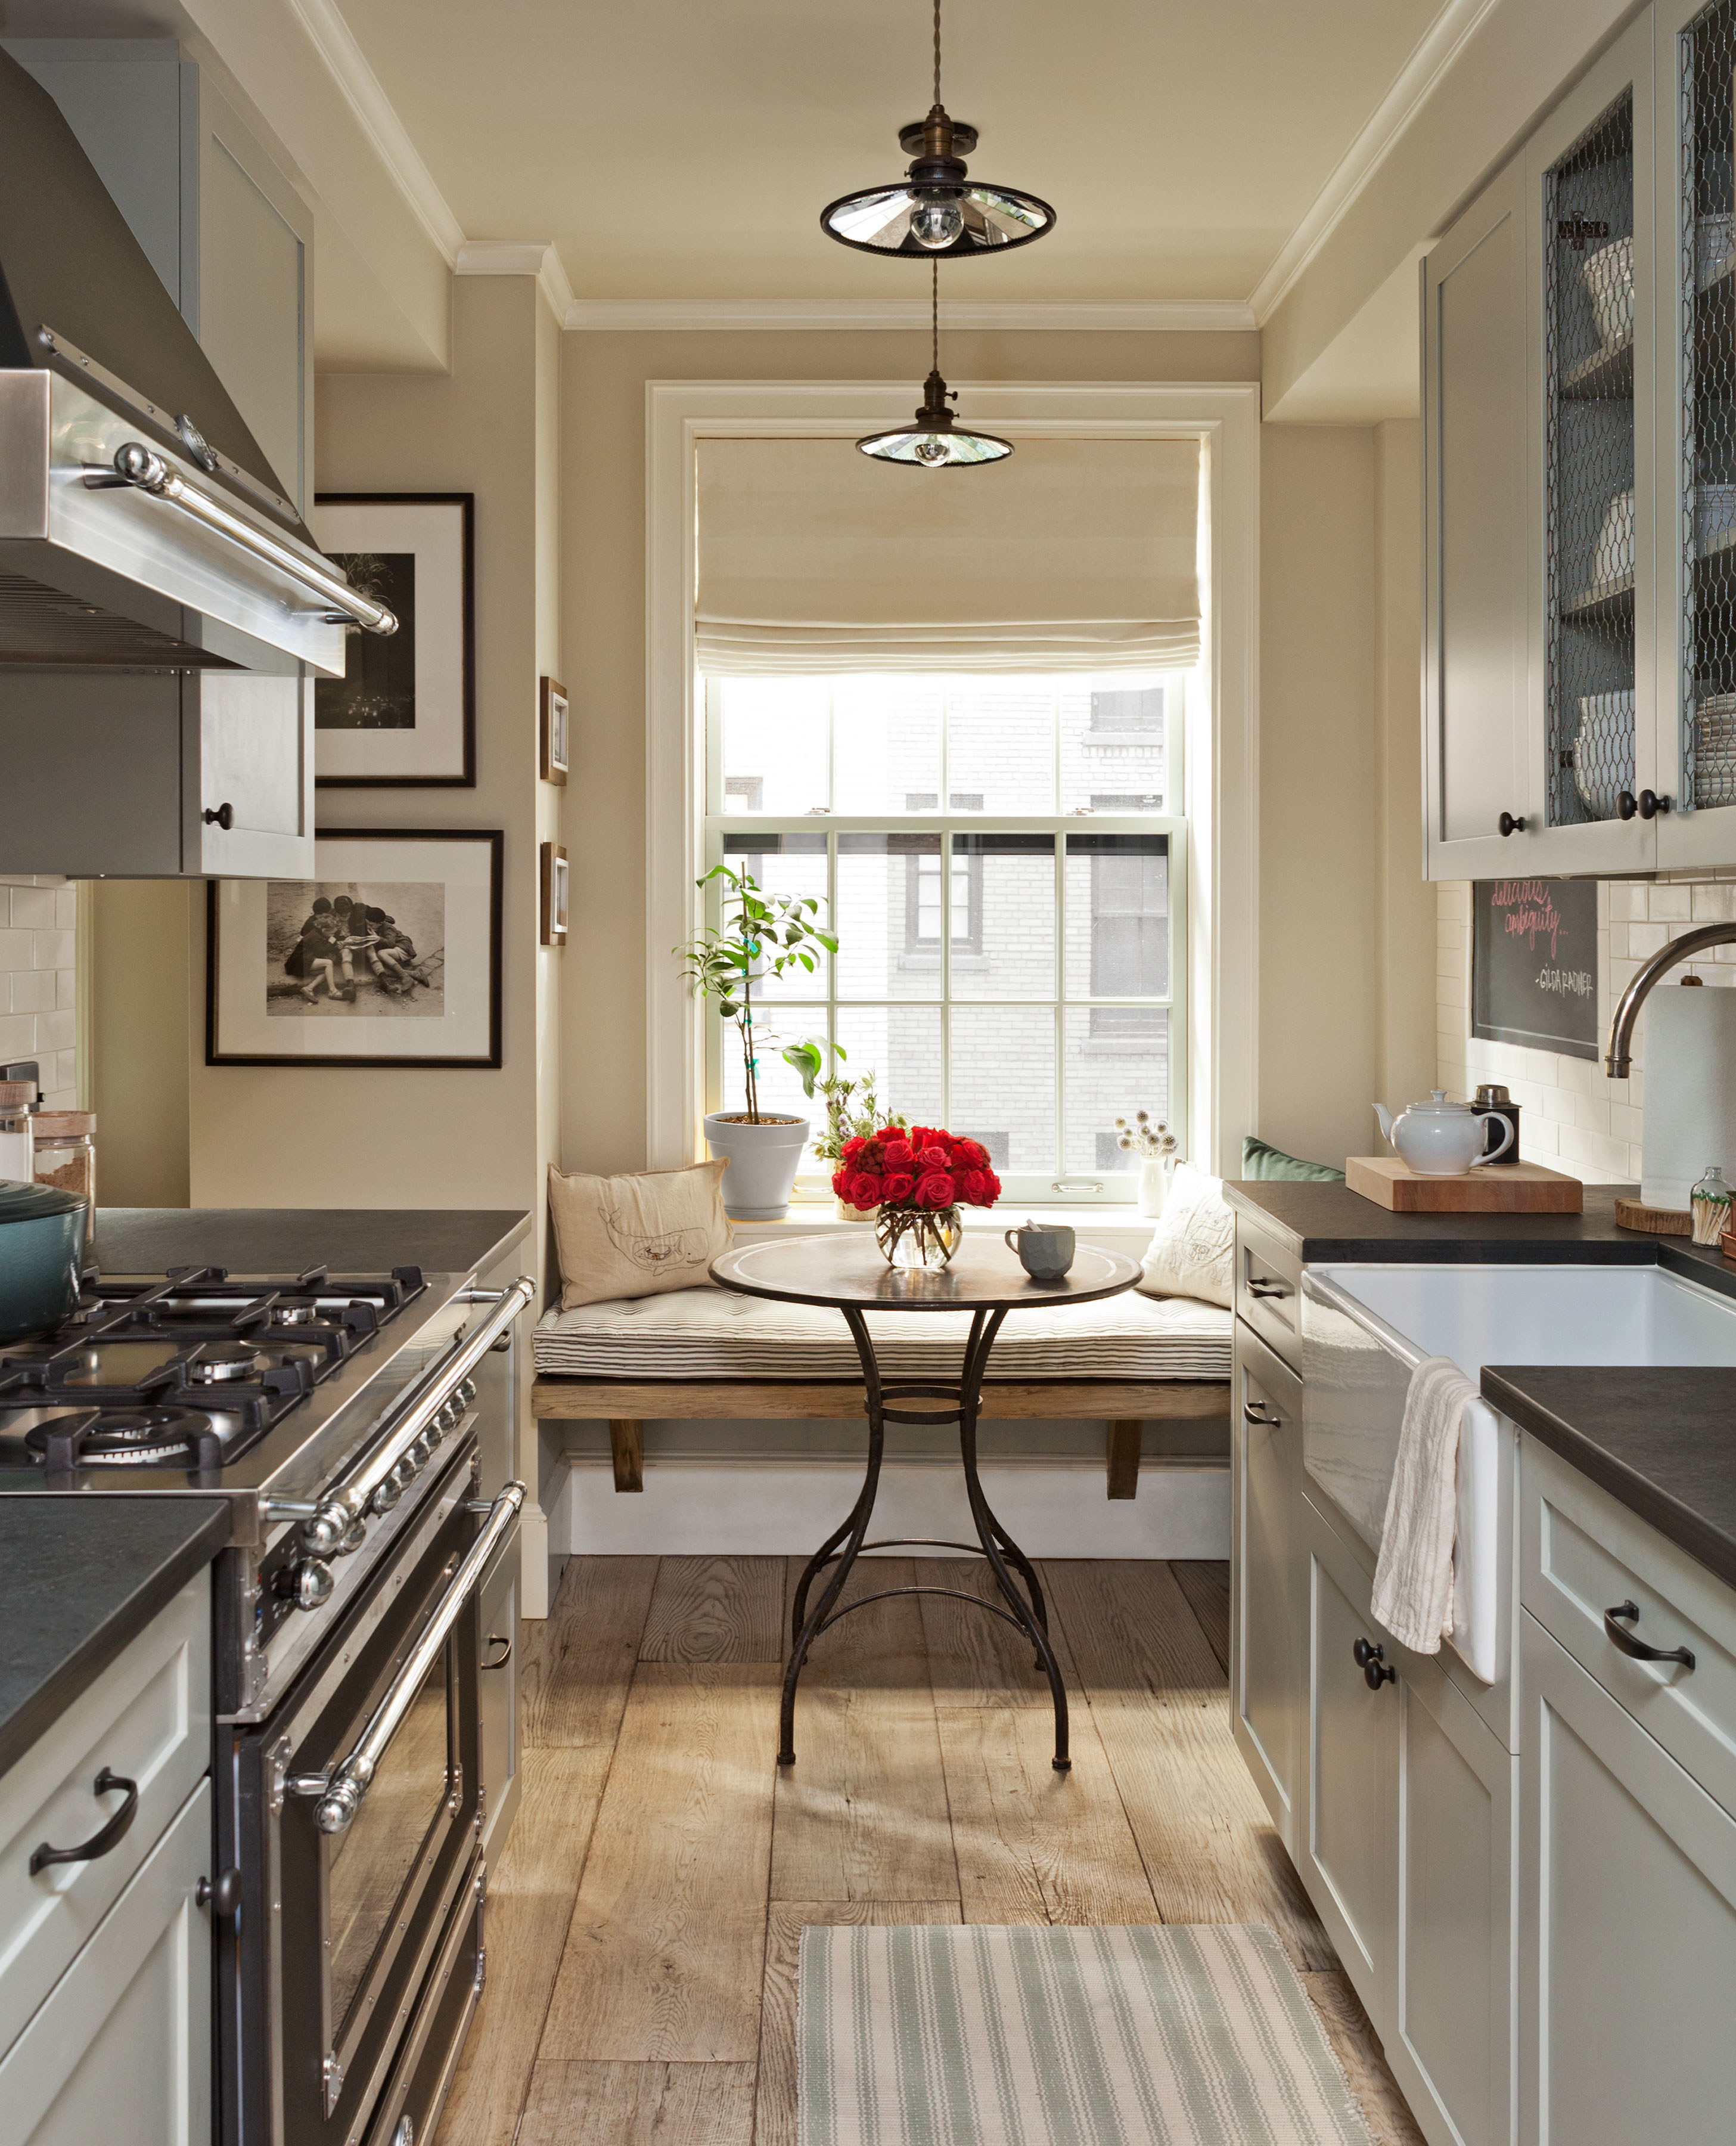 5 Tips to Make Your Small Kitchen Feel Large  HuffPost